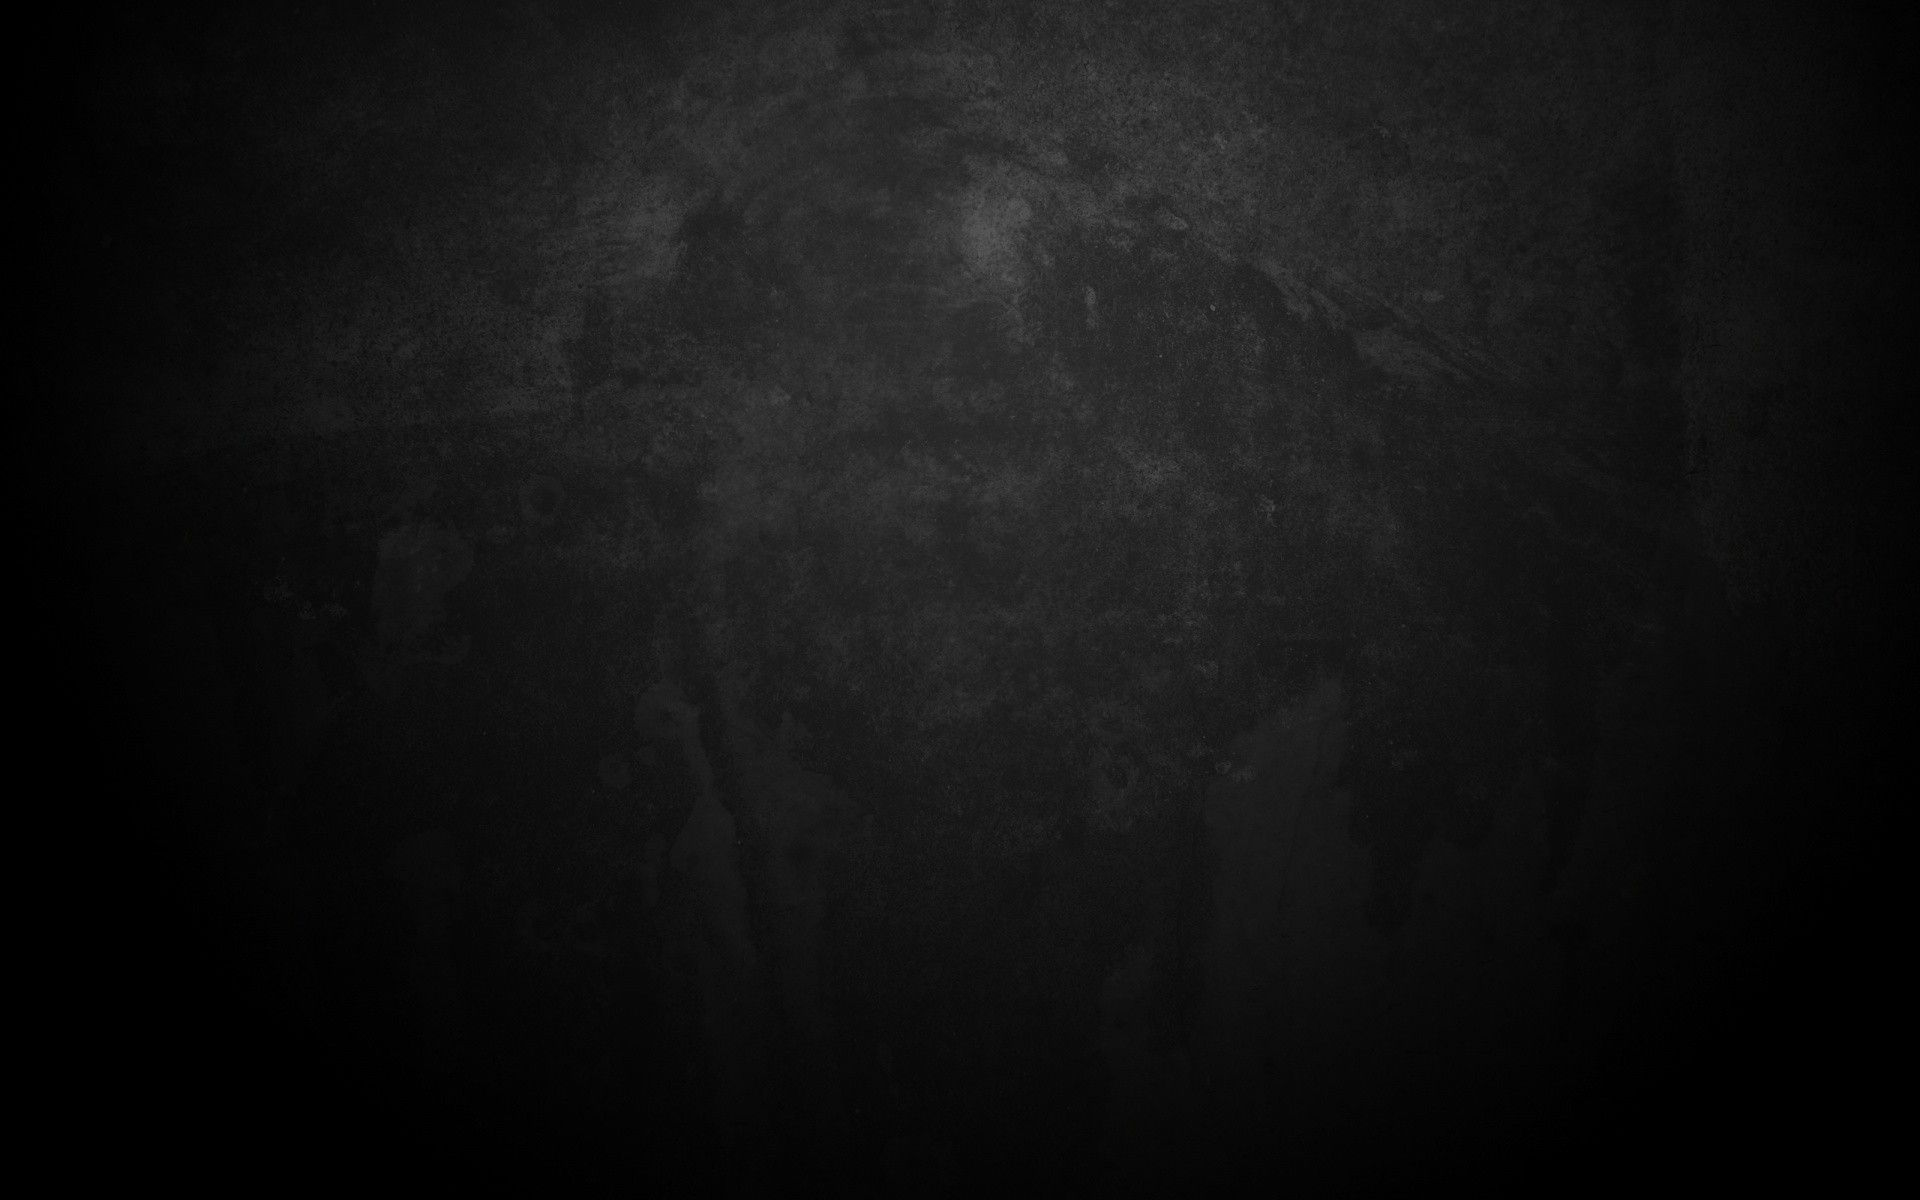 General 1920x1200 Simple Dark Simple Background Texture Black Background Dark Desktop Backgrounds Dark Wallpaper Black Texture Background